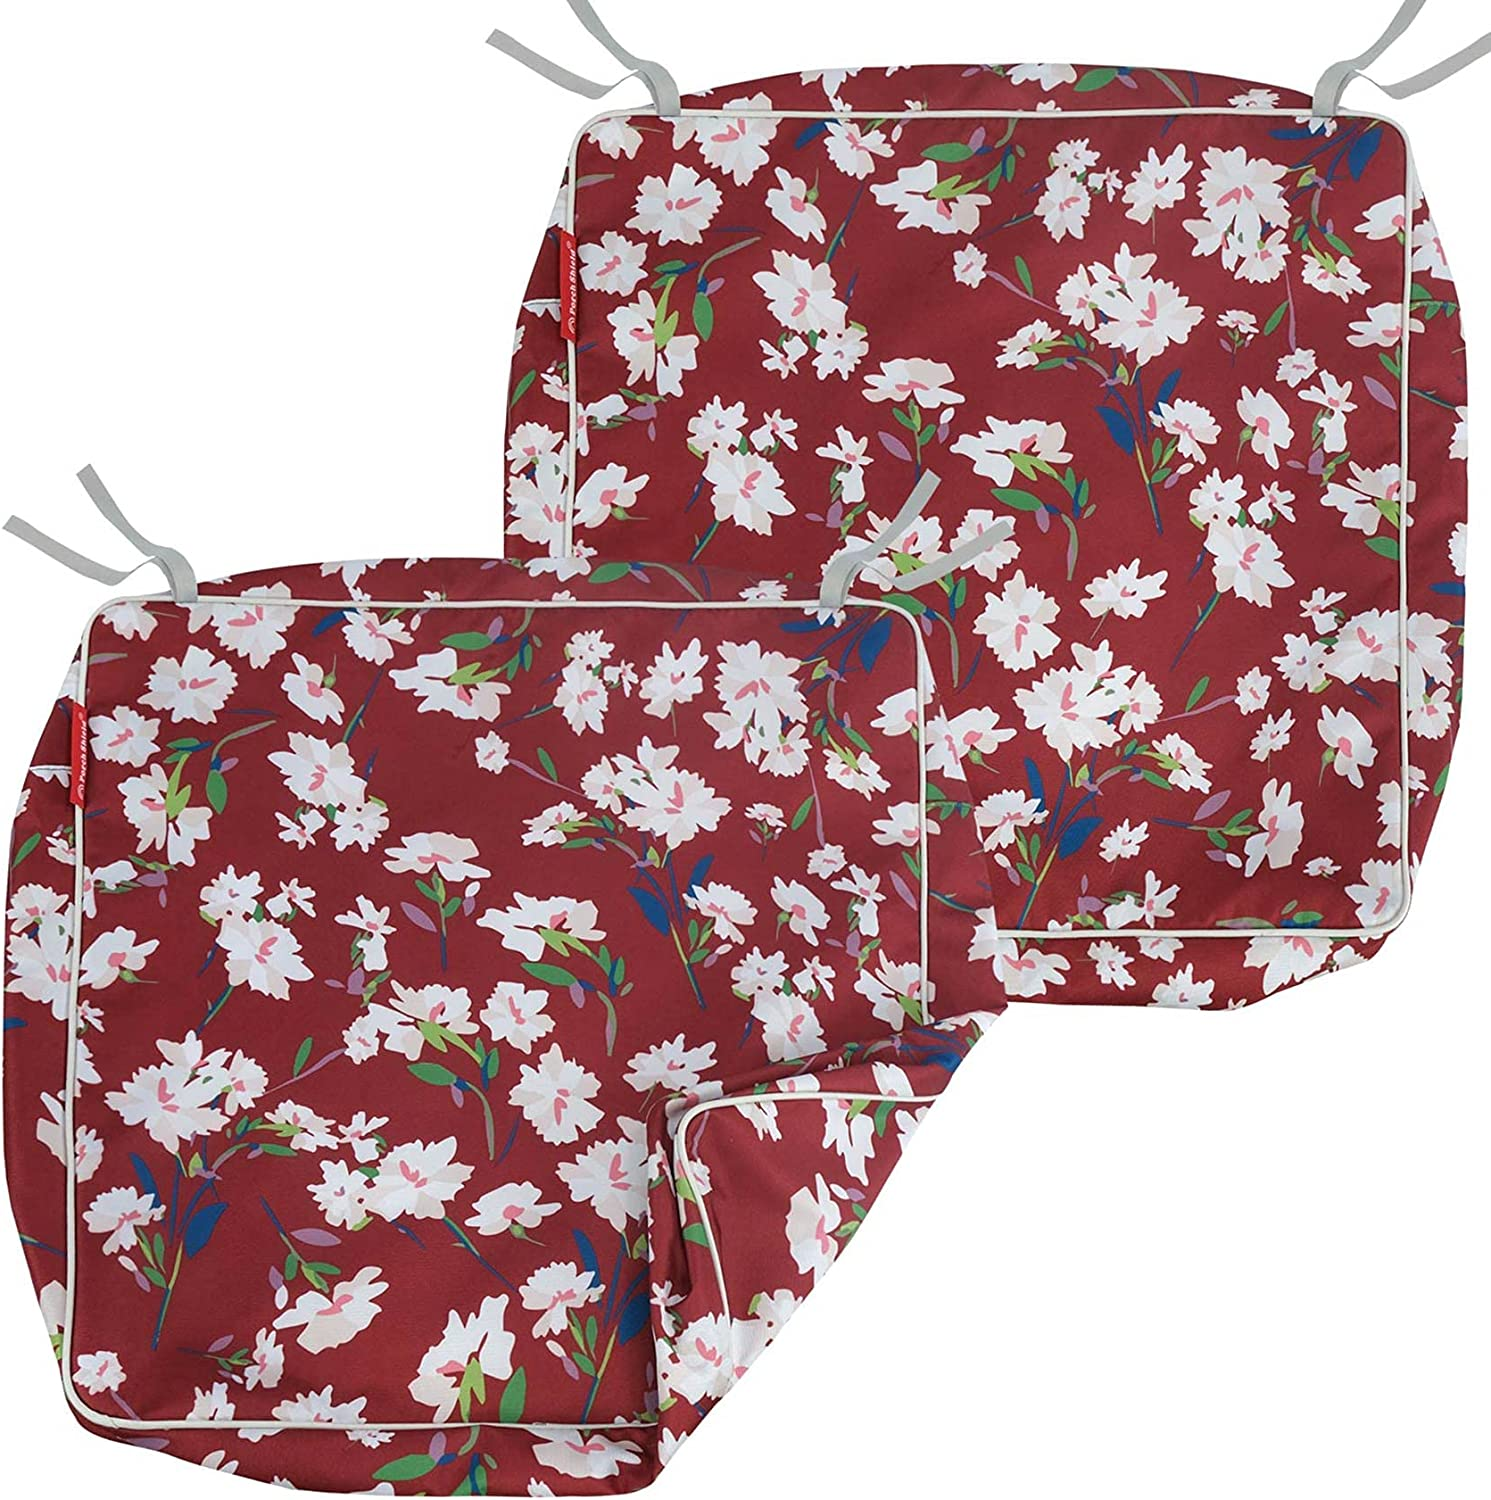 Porch Shield Outdoor Seat Cushion Covers Set 2, Waterproof Fade Resistant Patio Chair Seat Cushion Slip Covers 19 X 19